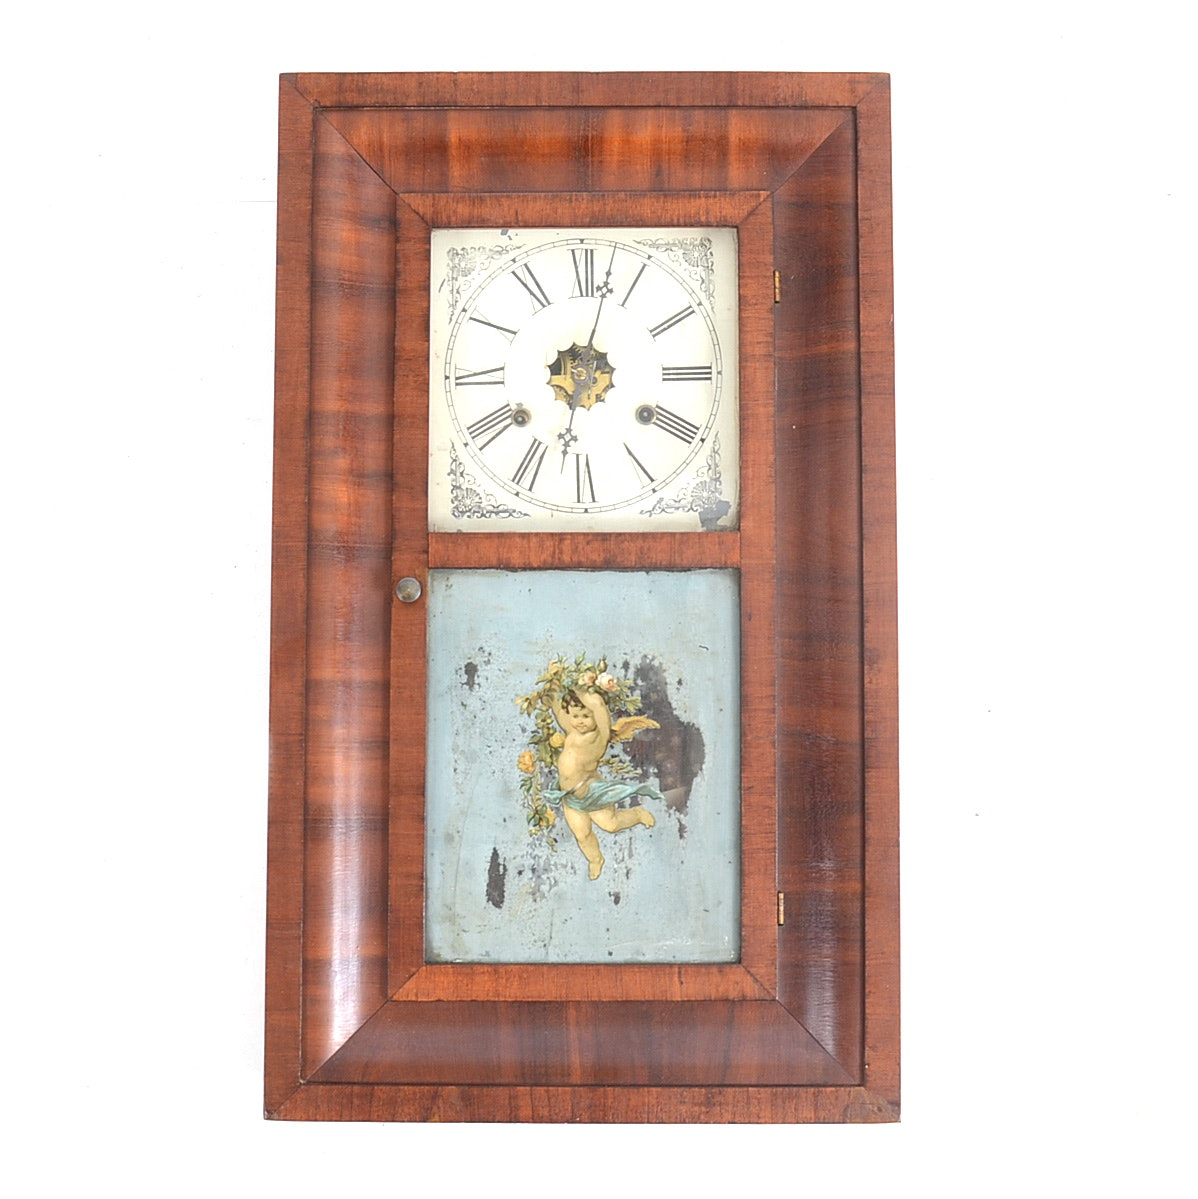 A Vintage Quot Verichron Quot Keywind 31 Day Wall Clock With